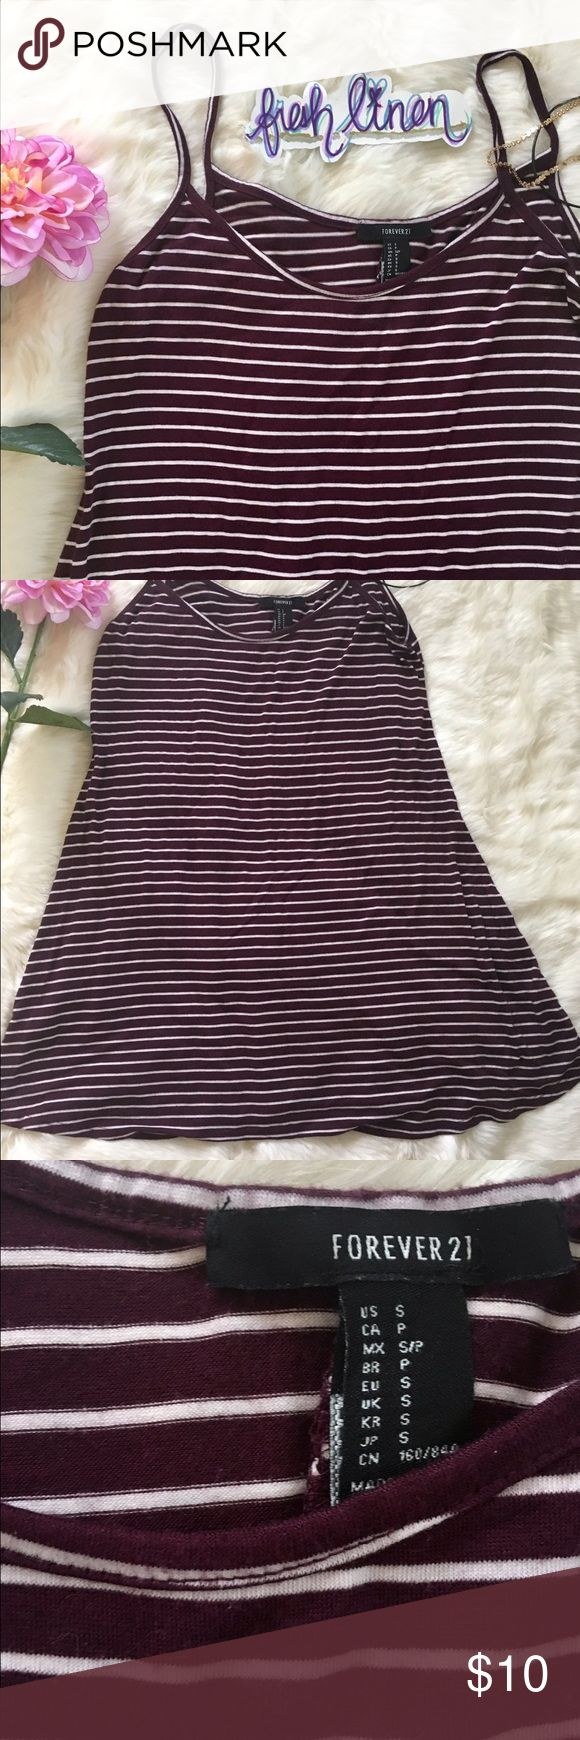 F21 Striped Tank Mini Dress FOREVER 21 Striped Tank Mini Dress. Size Small. Made in Guatemala. 73% Rayon. 24% Polyester. 3% Spandex. Plum and White stripes. Cute for the Summer or with leggings/tights and boots for the cold weather! Excellent used condition.. Forever 21 Dresses Mini